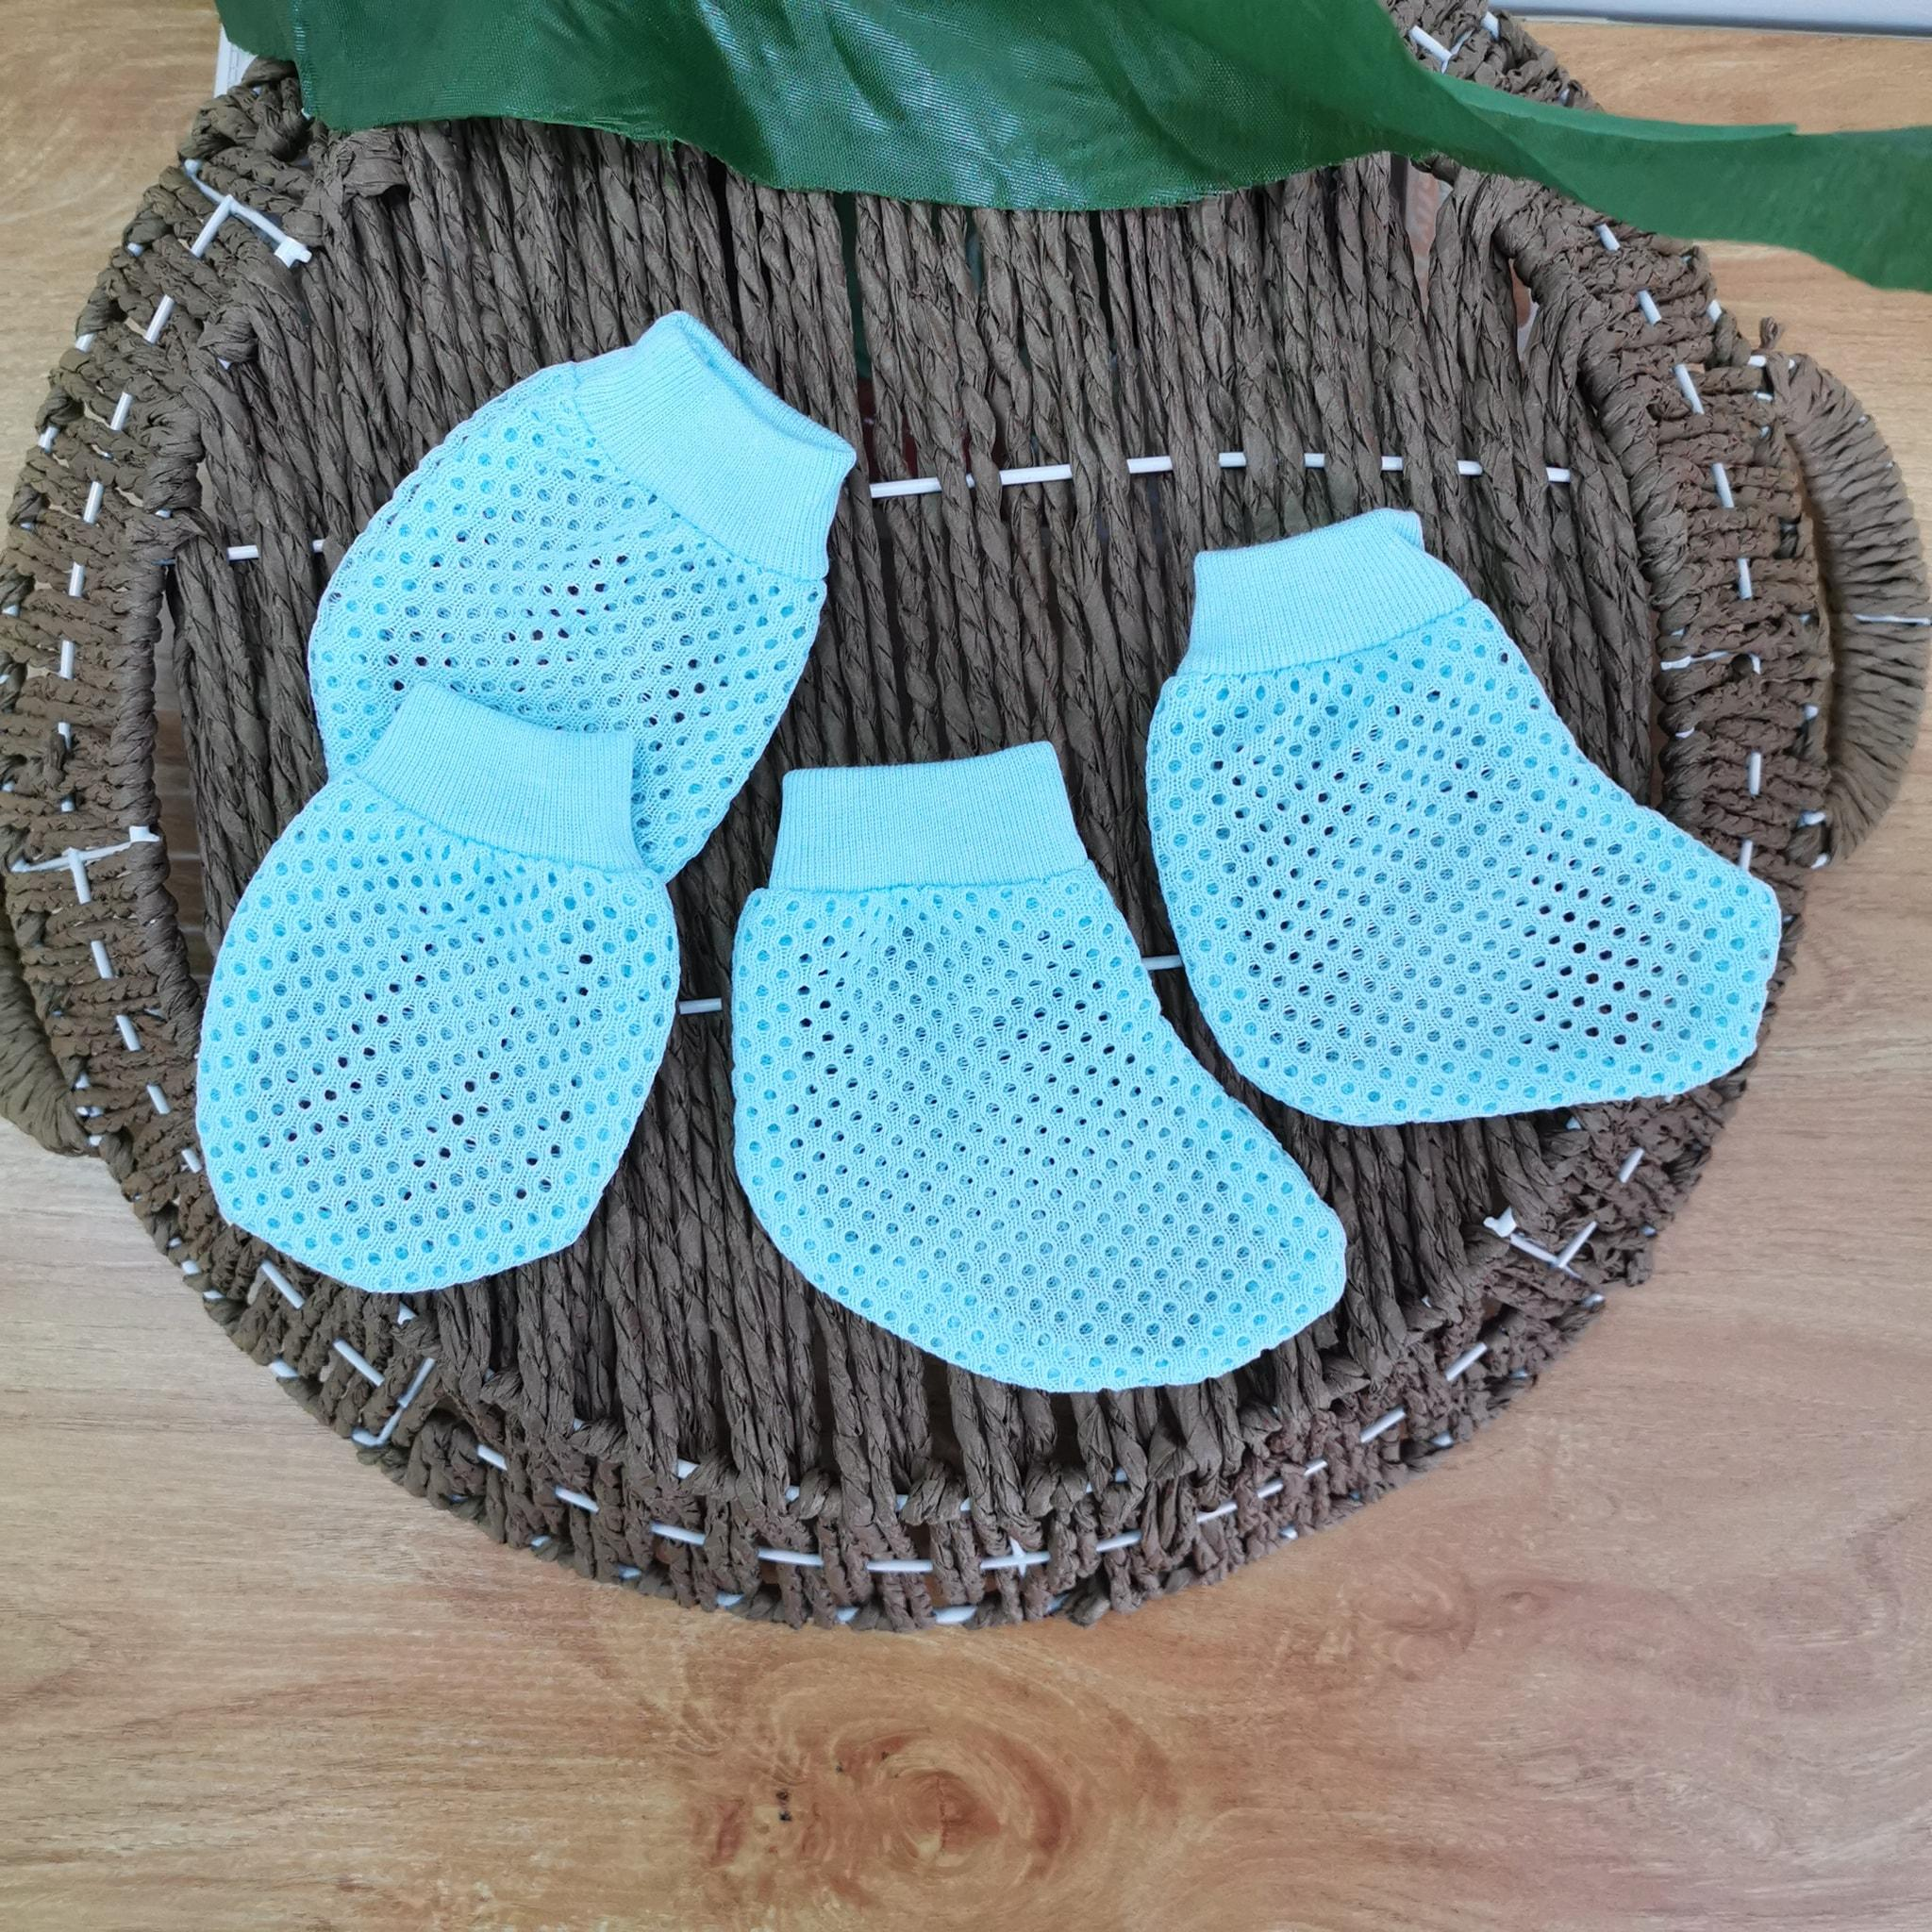 Flash Sales Baby Cotton Mitten and Bootie Set Newborn Must Have Keep Tiny Feet Warm One Pair Cotton Net Plain Eyelet Suitable Hot Weather Smooth Comfort Baby Footwear Baby Mart